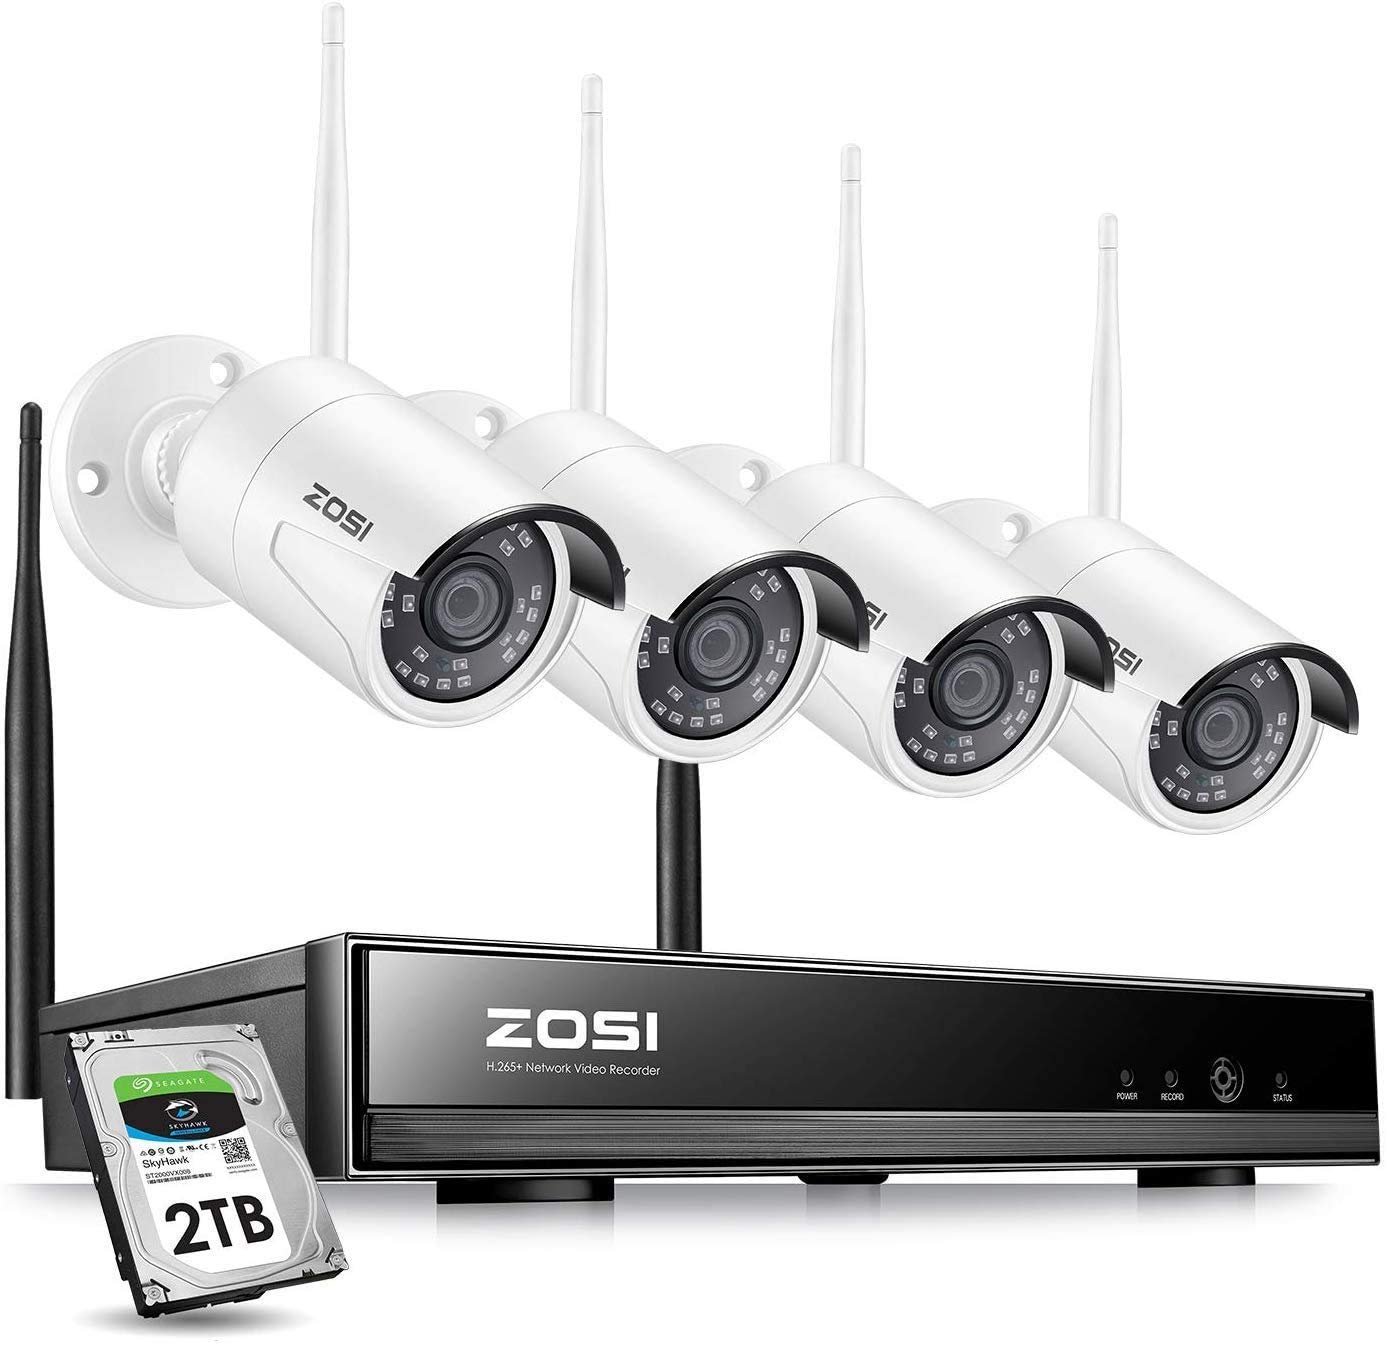 ZOSI 8CH 1080P Wireless Security Cameras System Outdoor with 2TB Hard Drive,H.265+ 8CH 1080P HD Network IP NVR and 4pcs 2.0MP 1080P Wireless Weatherproof IP Surveillance Cameras with 80ft Night Vision